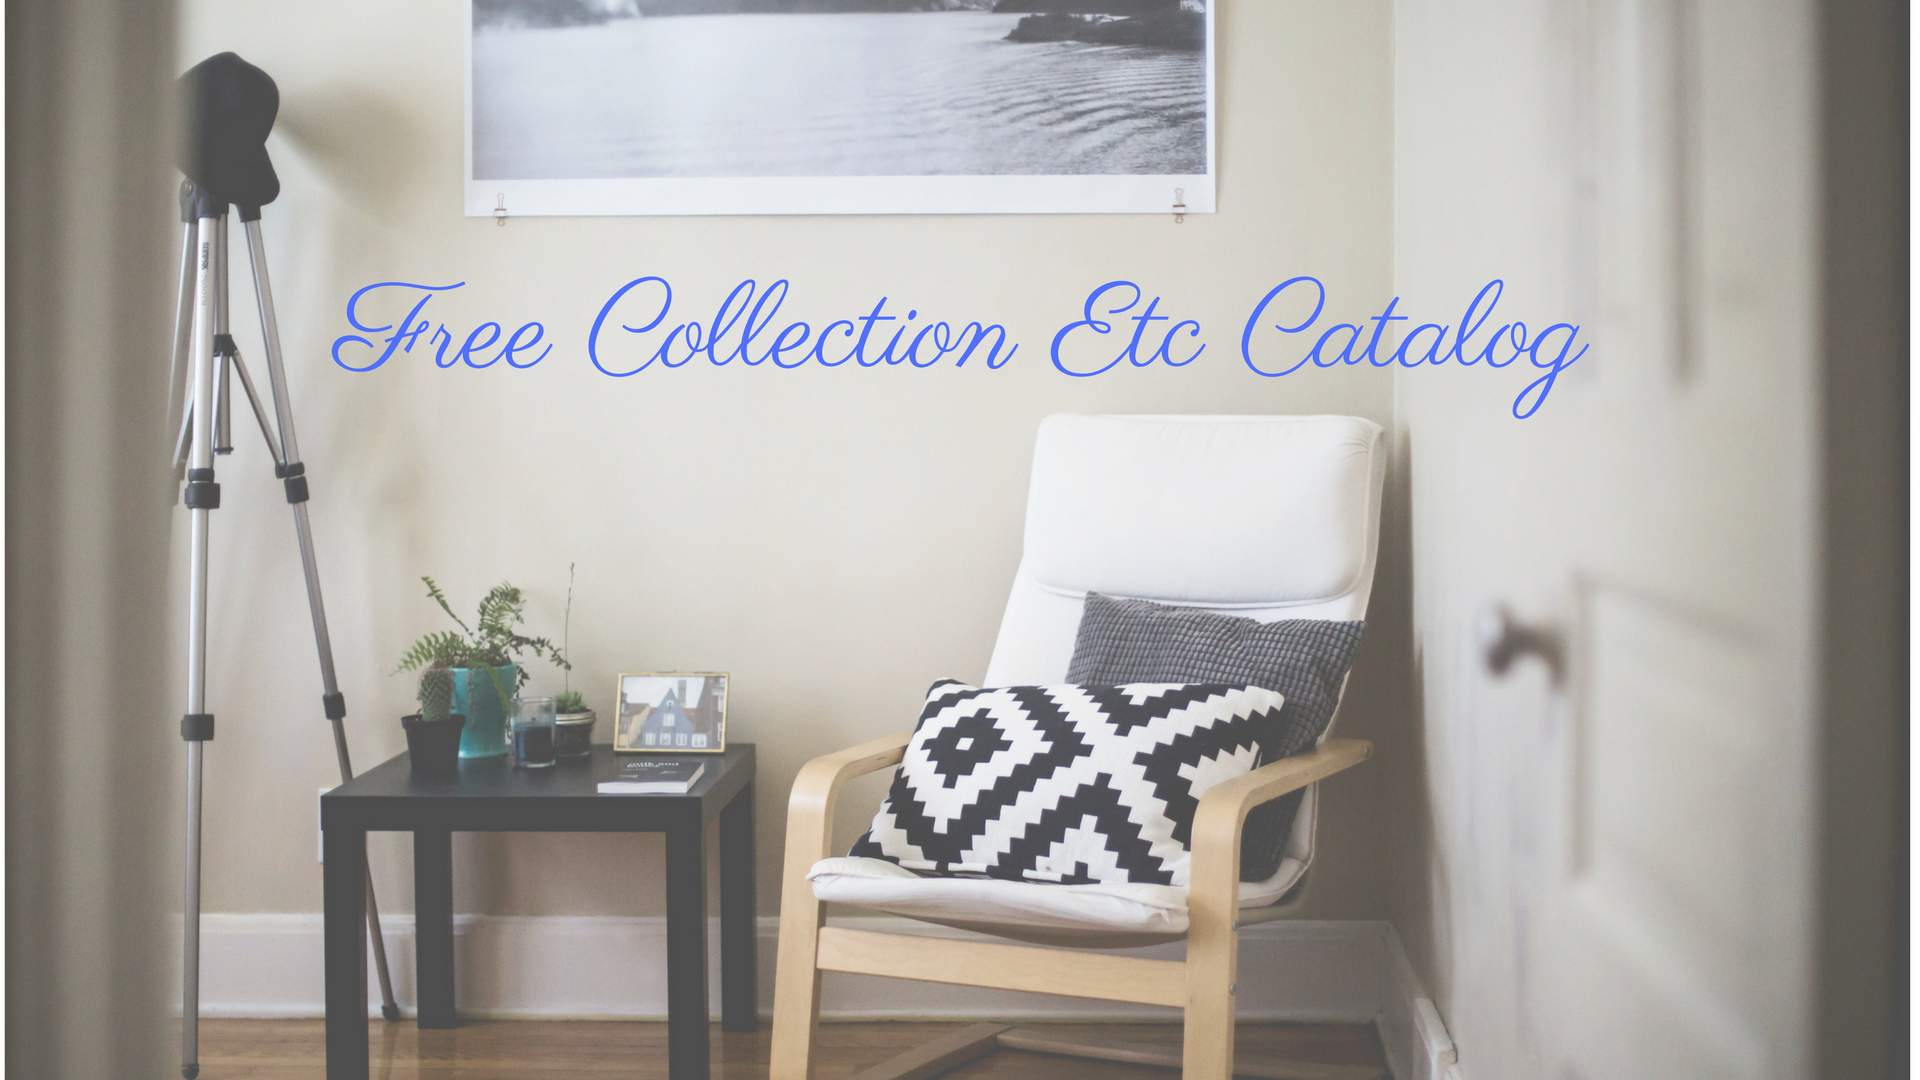 Collection Etc Catalog